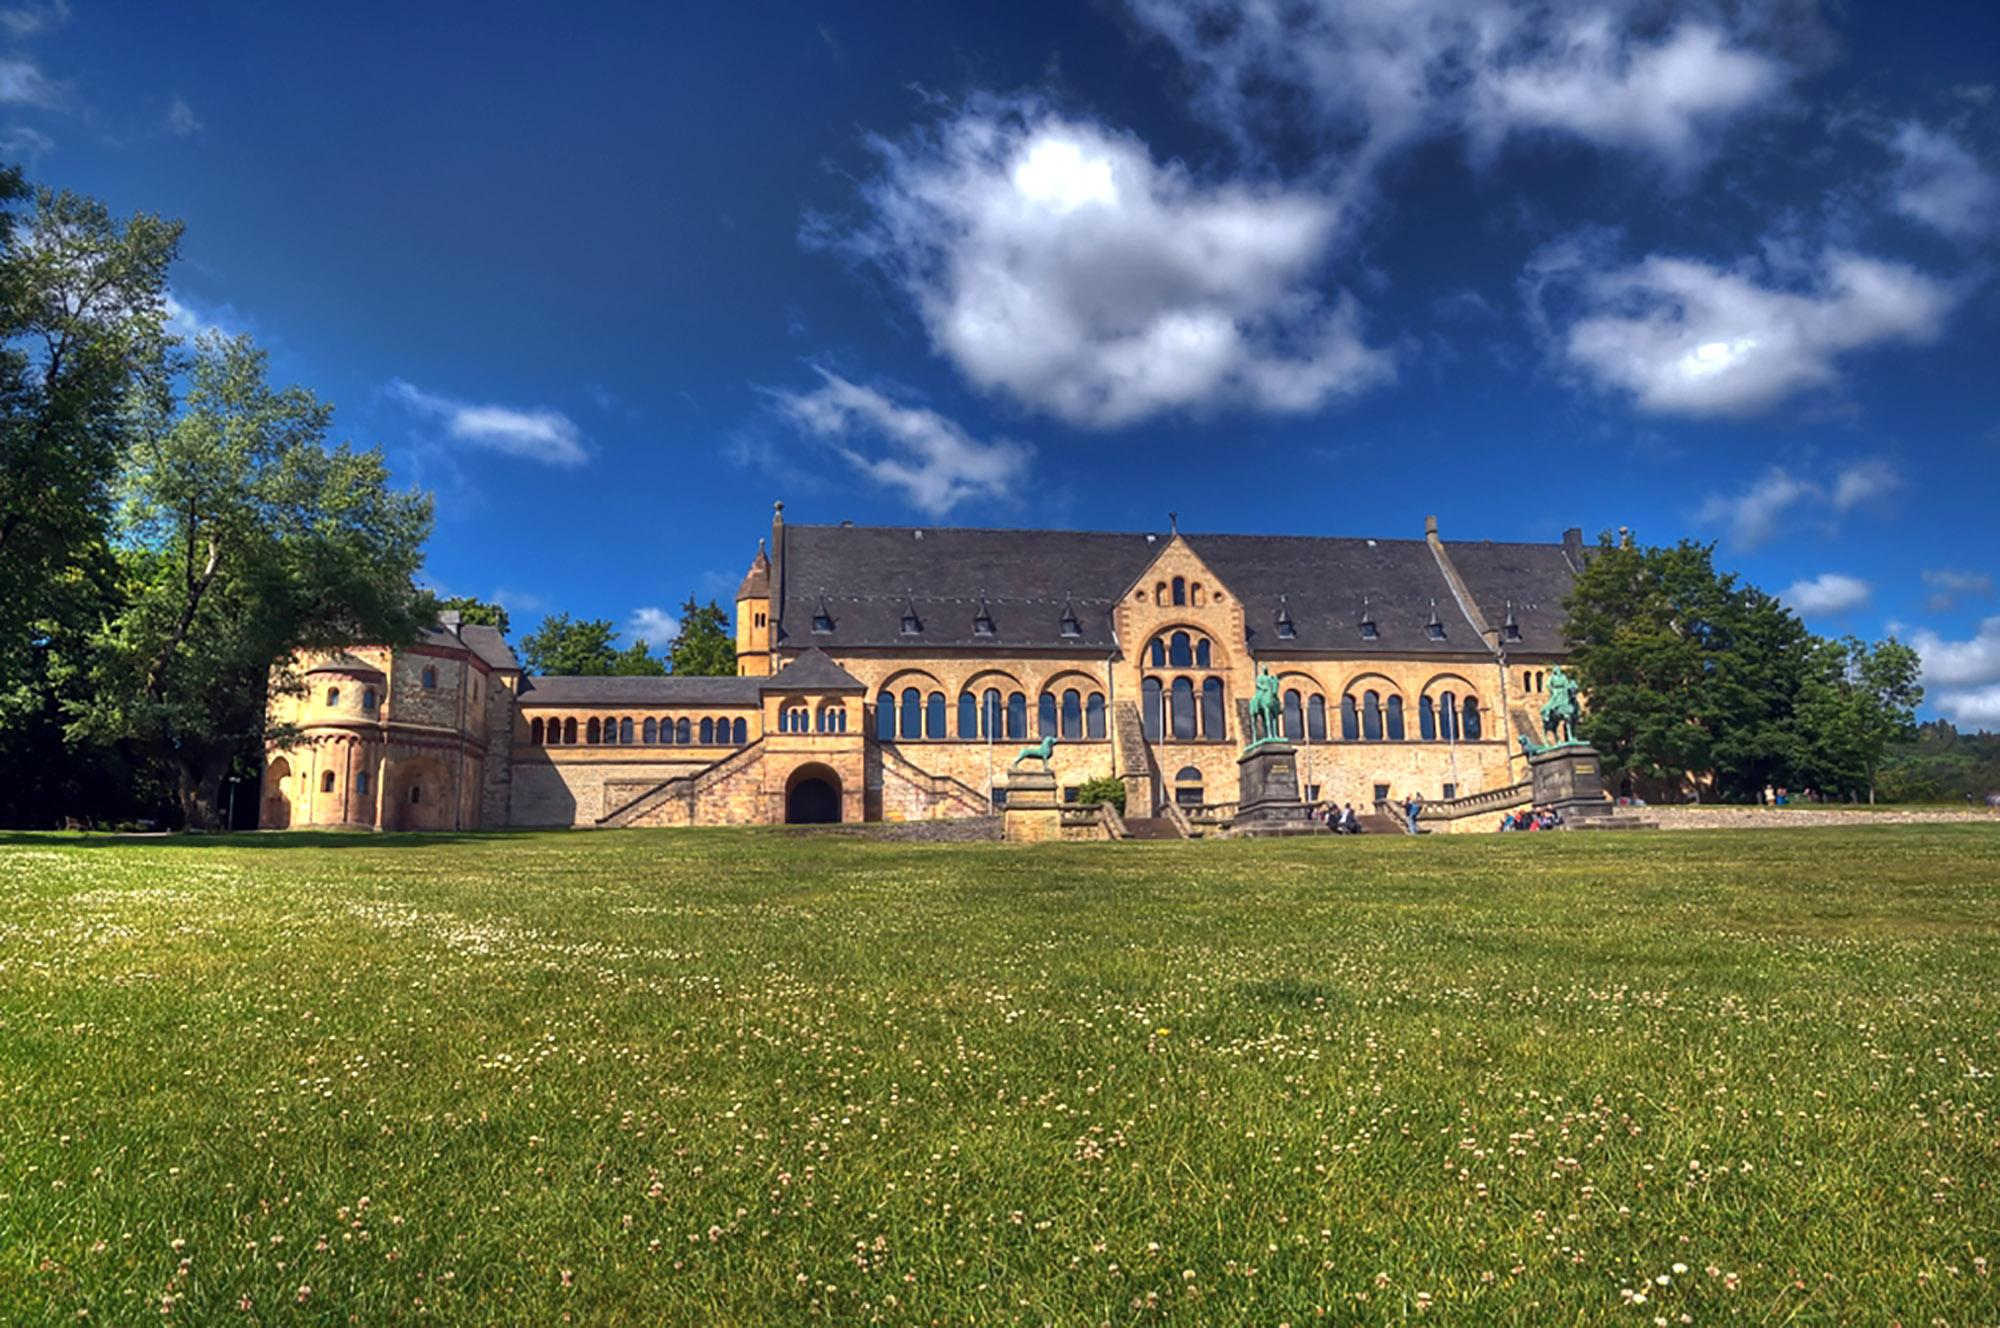 German history has been written at the Imperial Palace in Goslar for over 200 years at numerous imperial assemblies. – © Stefan Schiefer / GOSLAR marketing gmbh